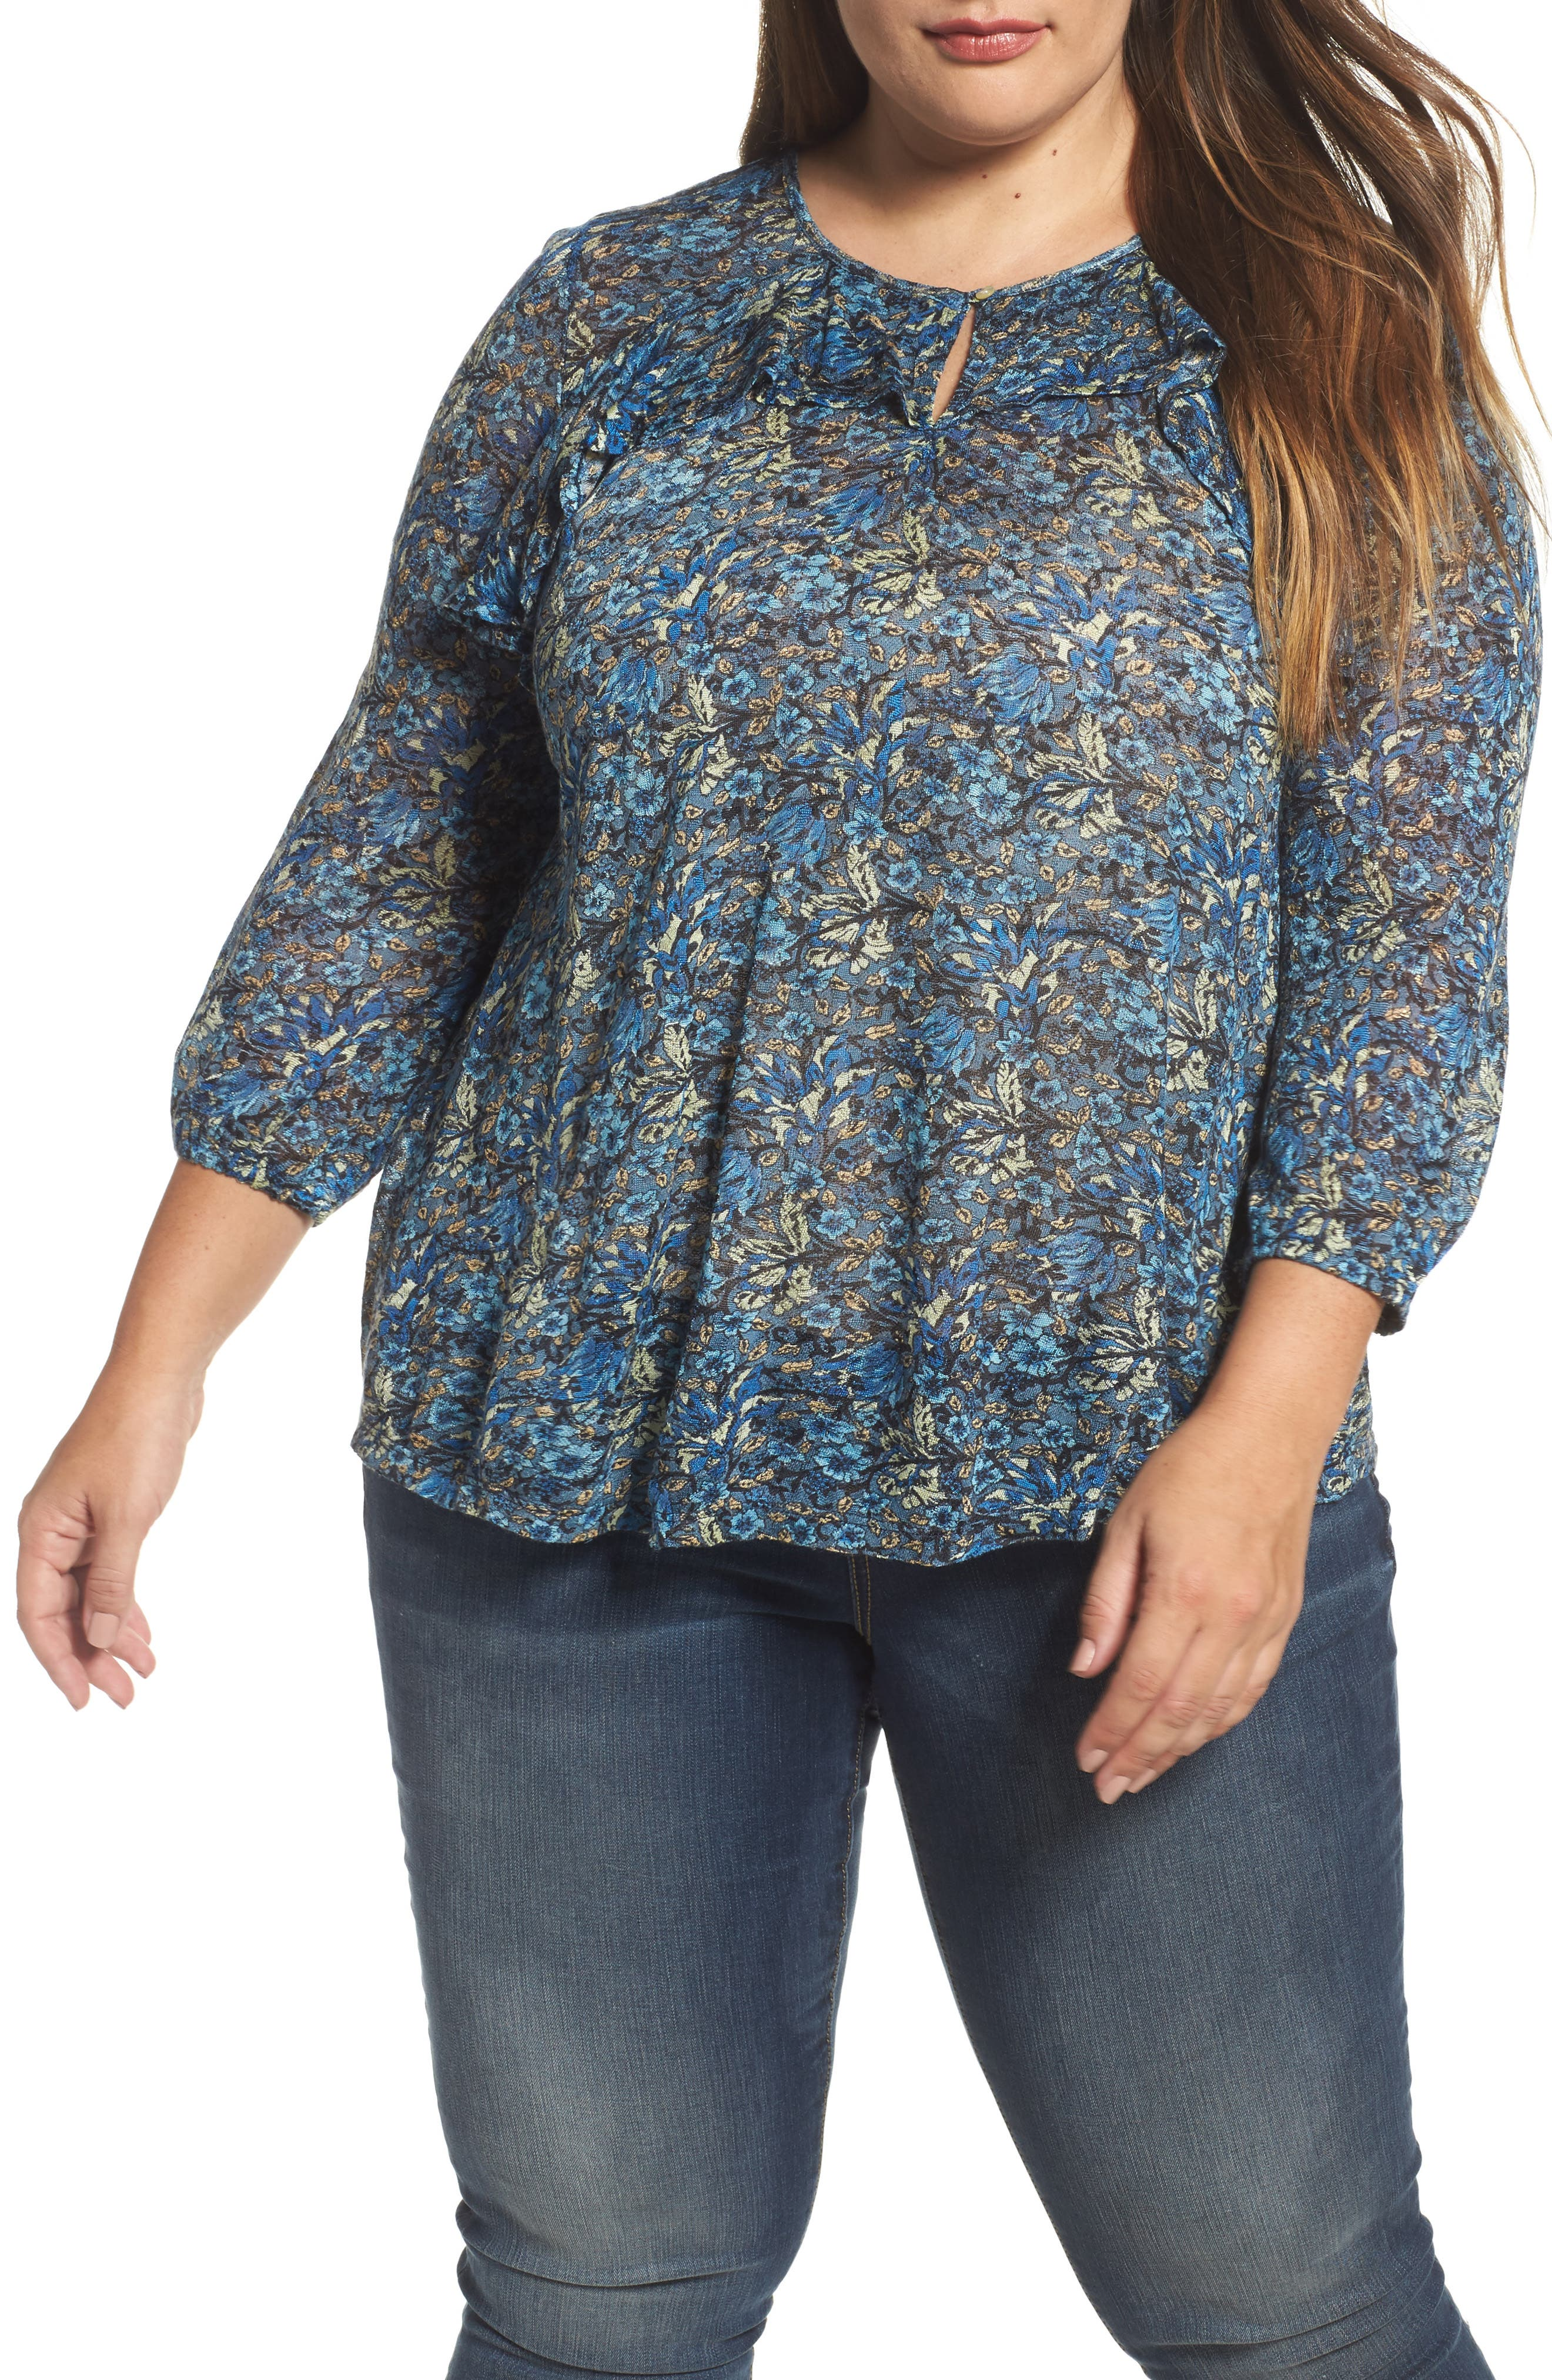 Main Image - Lucky Brand Ruffle Trim Floral Top (Plus Size)